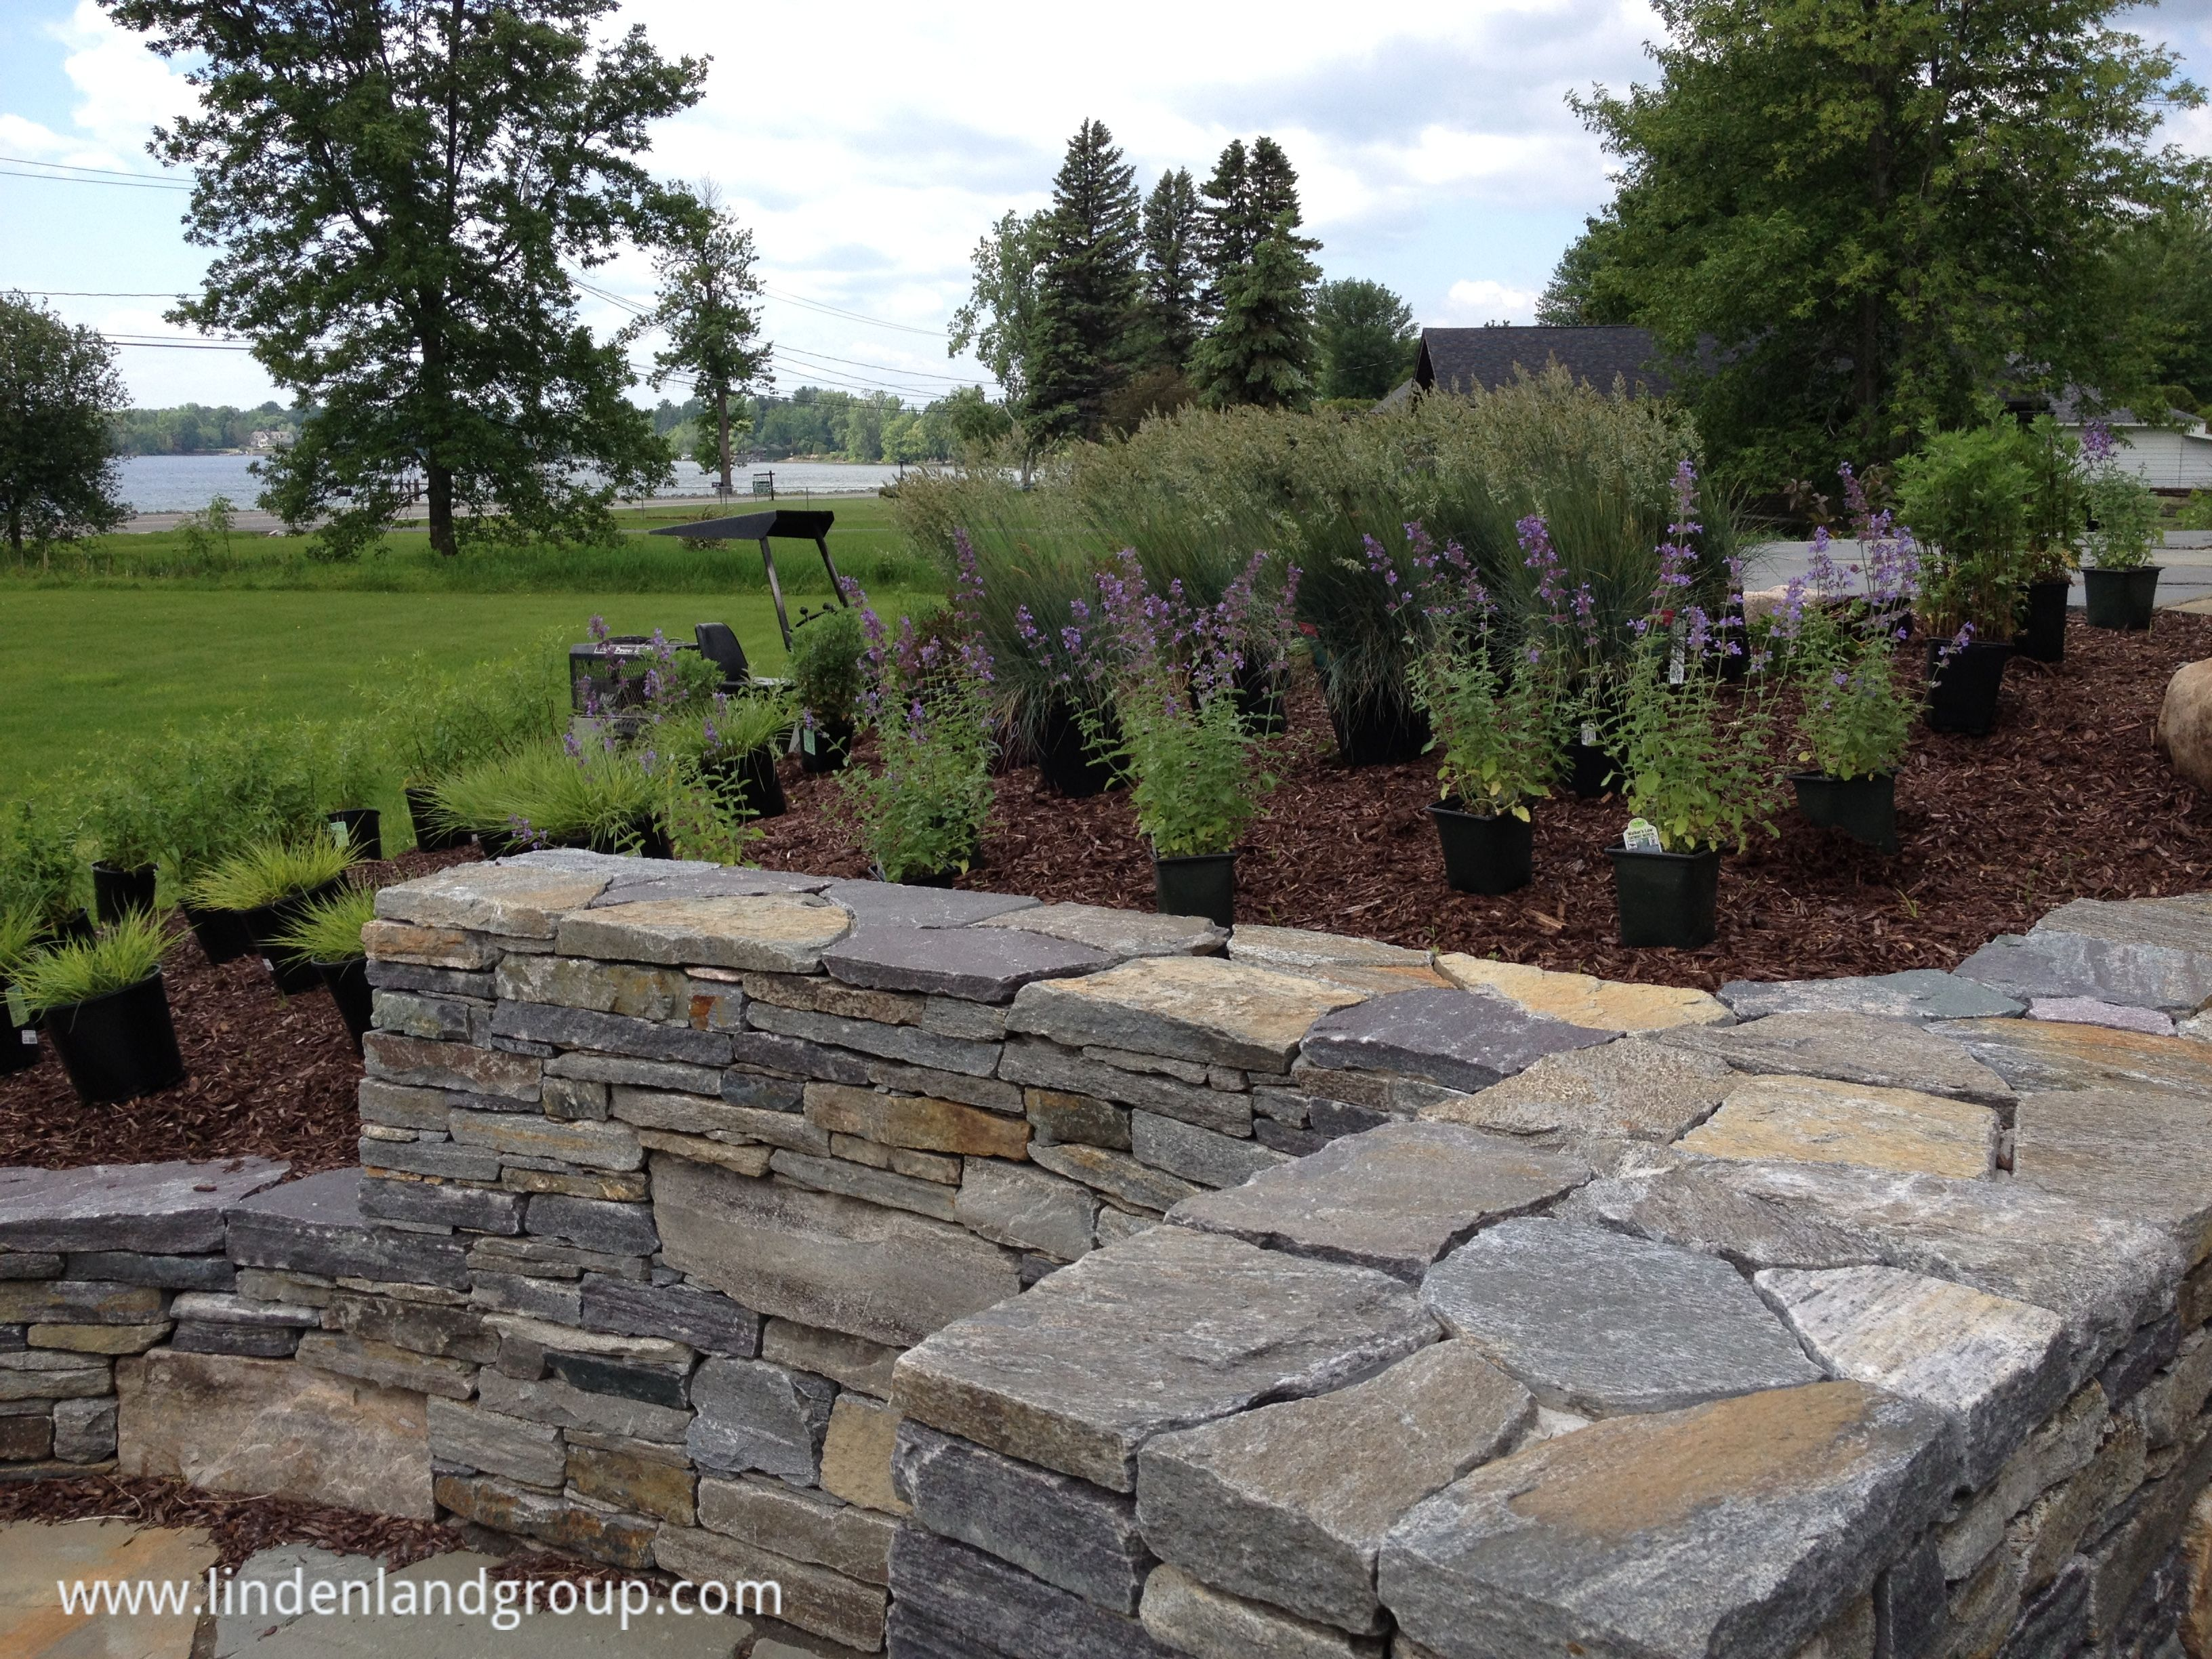 An American Granite Retaining Wall At One Of Our Projects In Chazy Ny Drought Tolerant Plant Sustainable Landscaping Natural Stone Wall Landscape Contractor